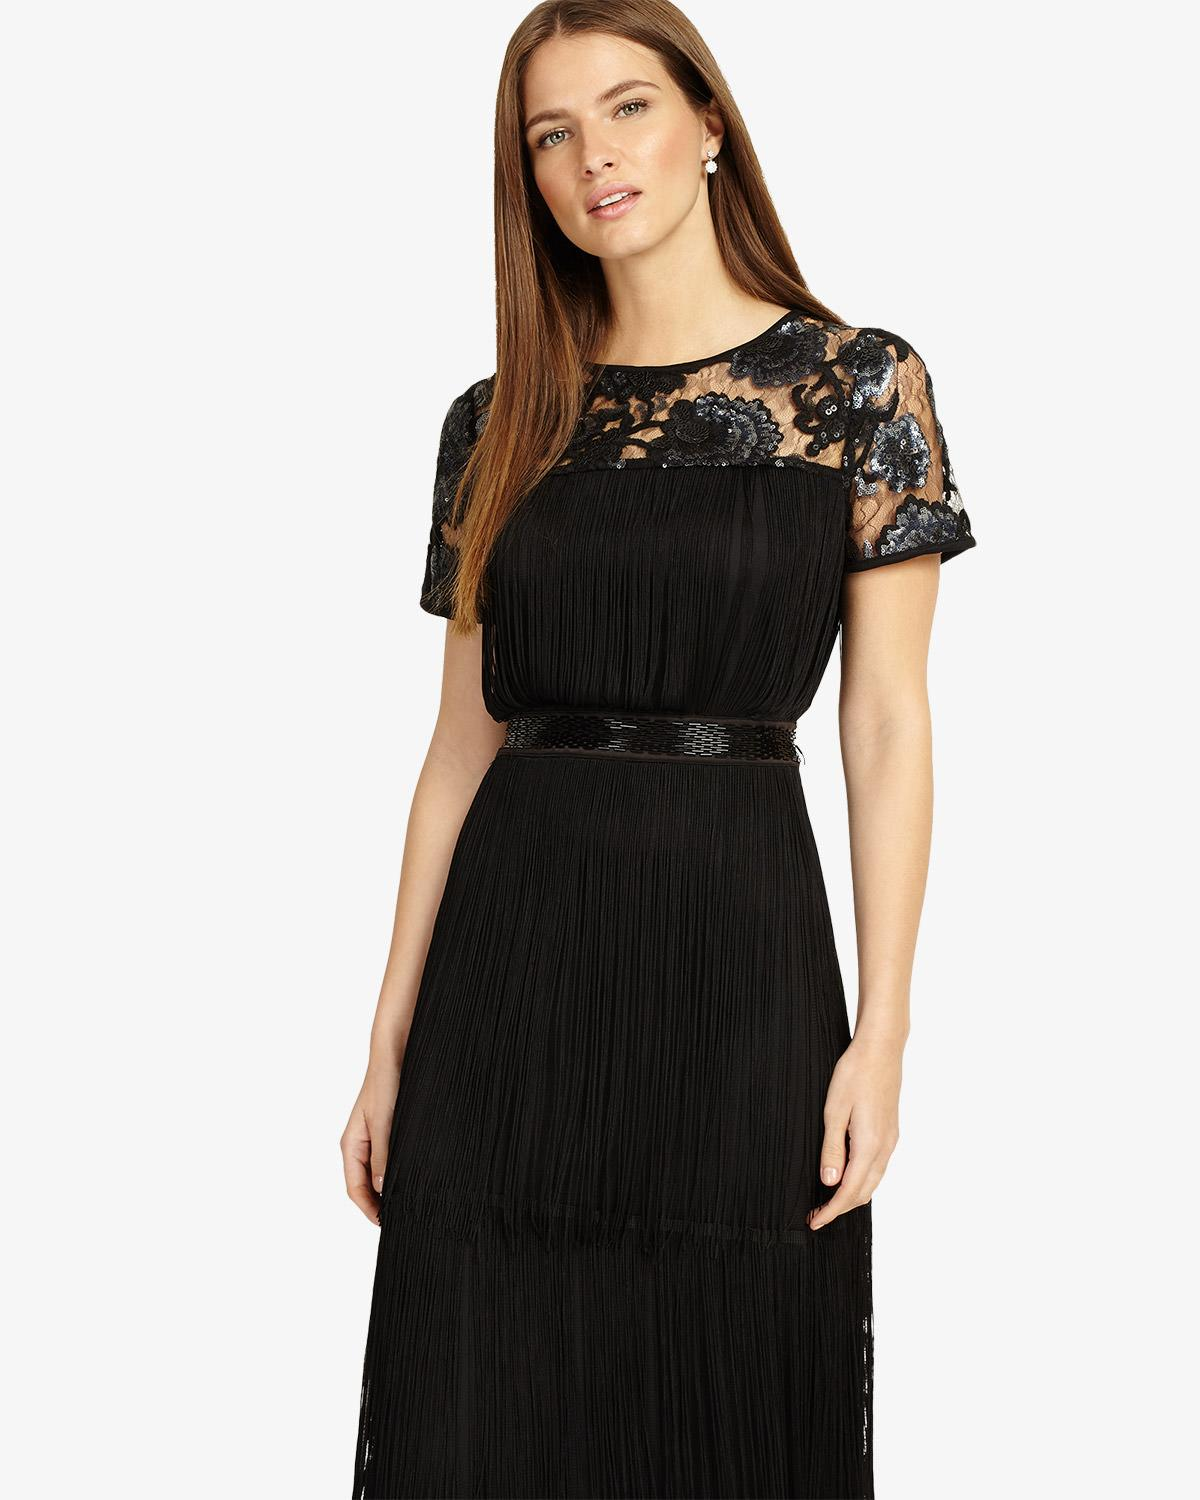 38ec6e6107 Phase Eight Malene Fringe Full Length Dress in Black - Lyst